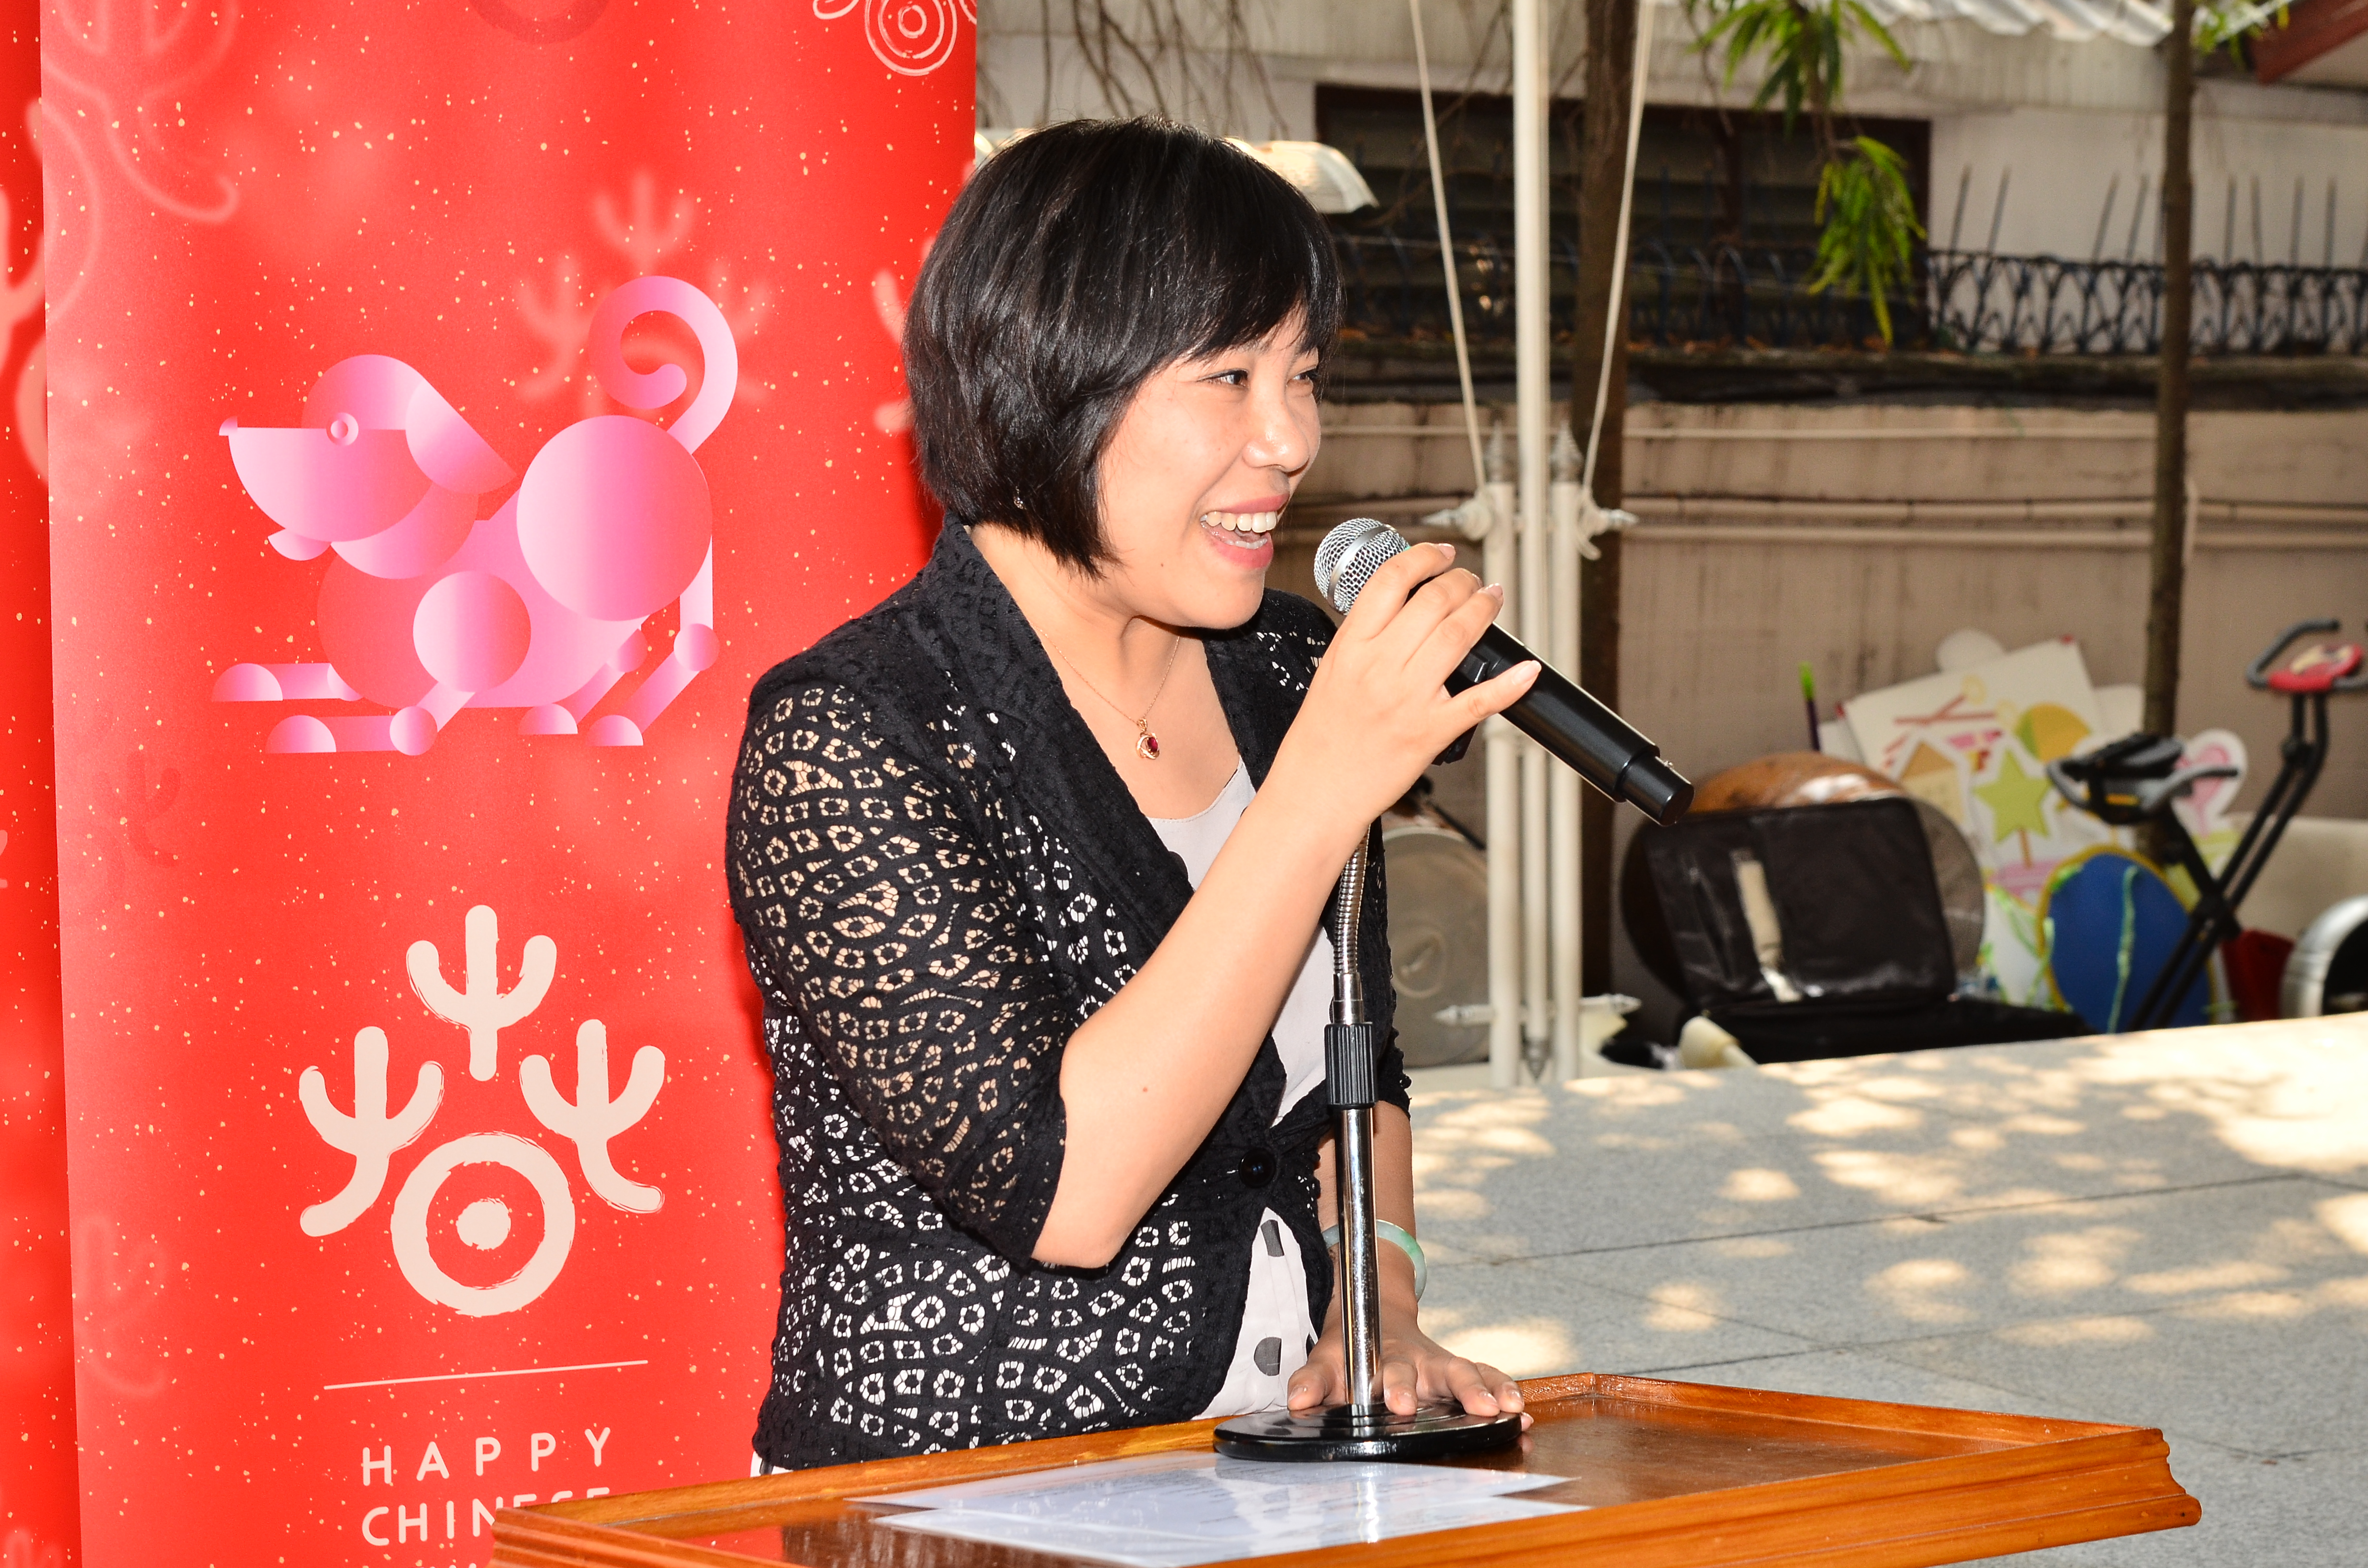 Madame pan peng visited autistic thai foundation on behalf of the chinese embassy in thailand and ambassador lyu jian madame pang peng extended new year greetings to the teachers and students of the kristyandbryce Choice Image